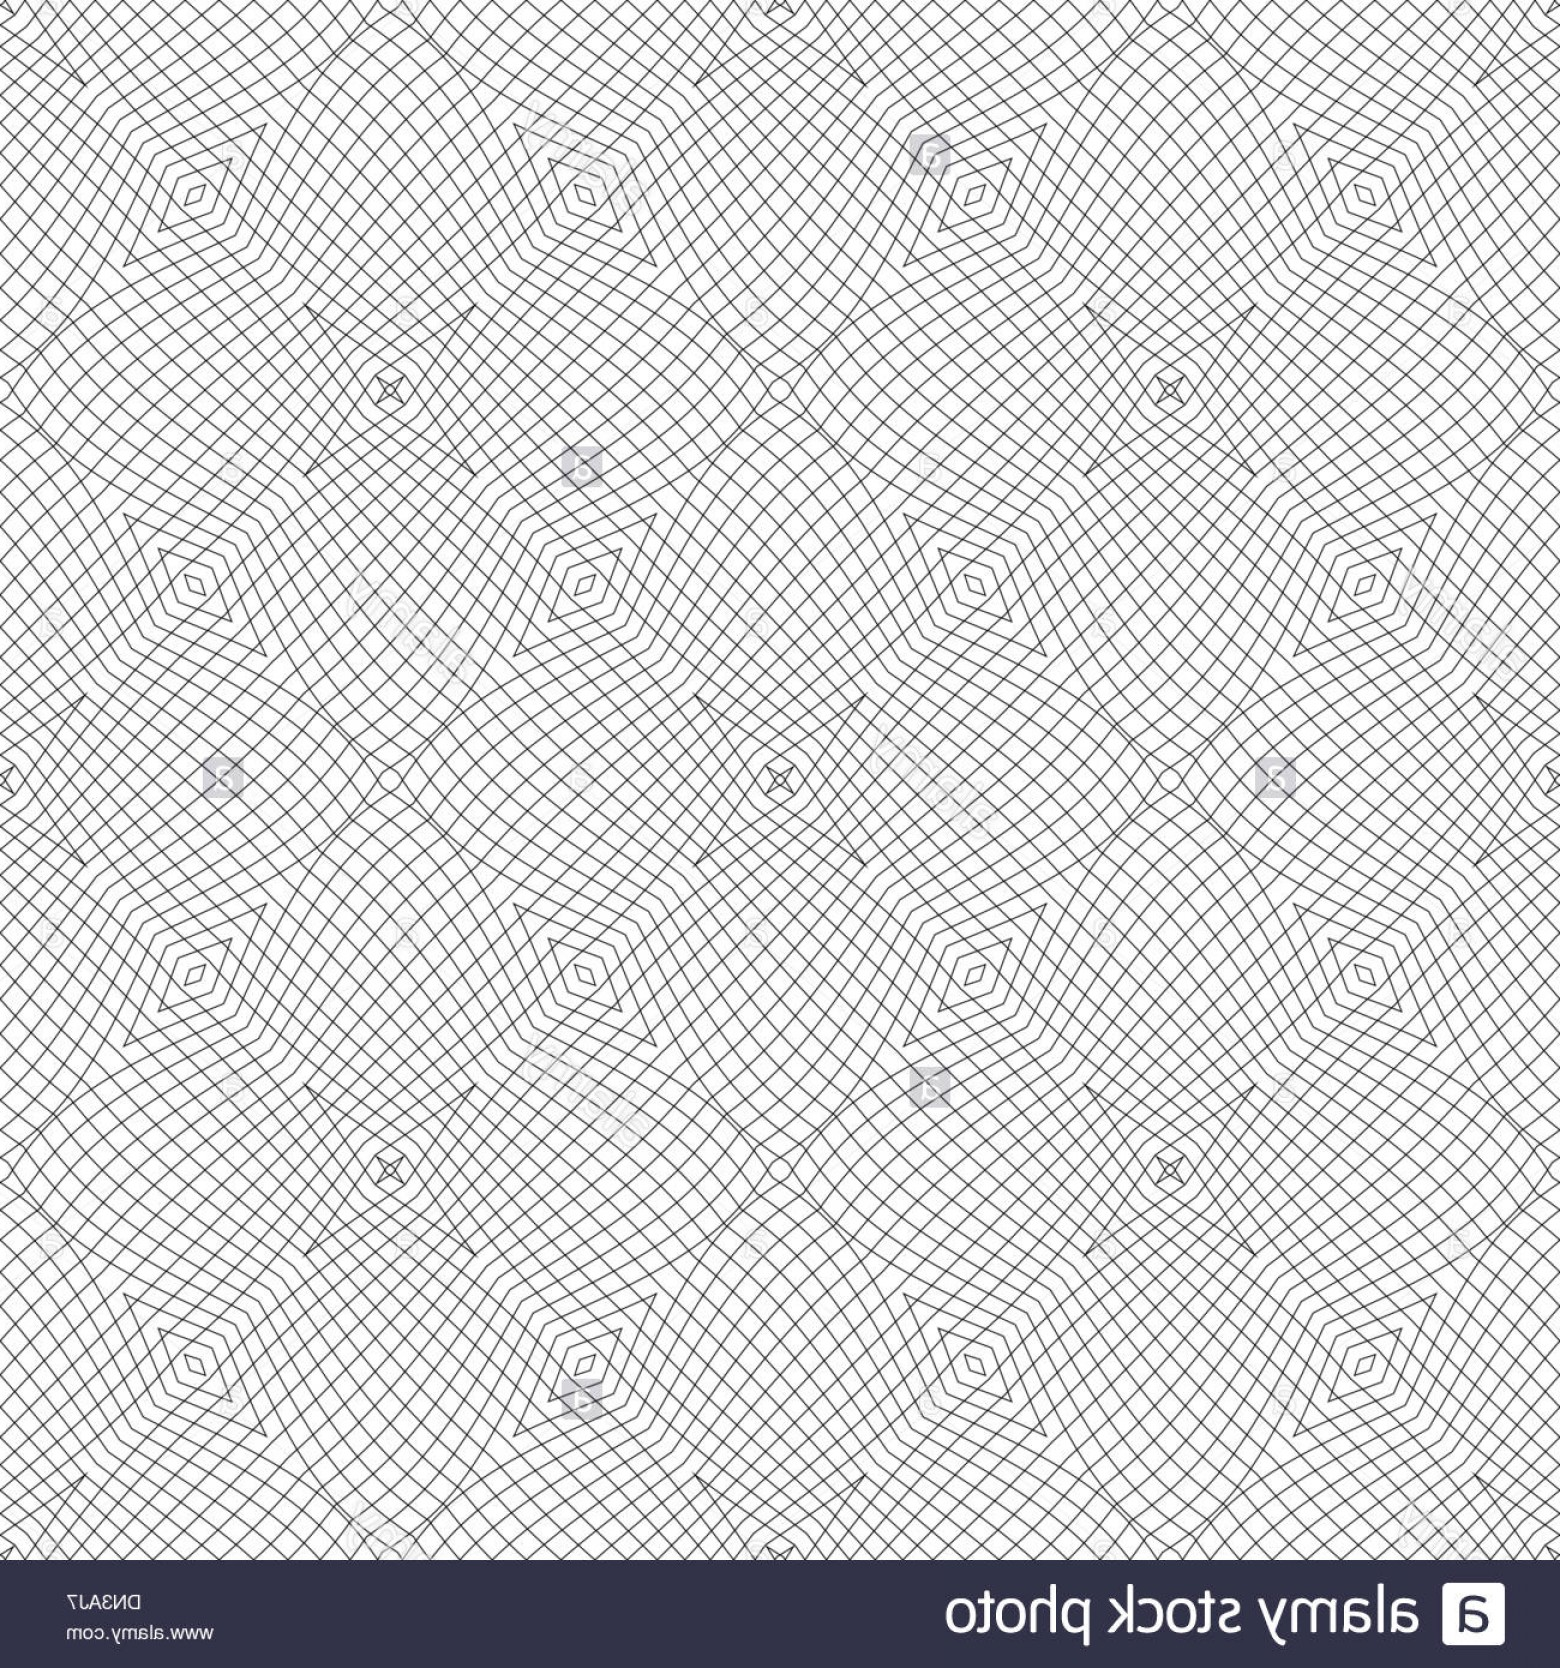 Security Vector Patterns: Stock Photo Vector Seamless Guilloche Background